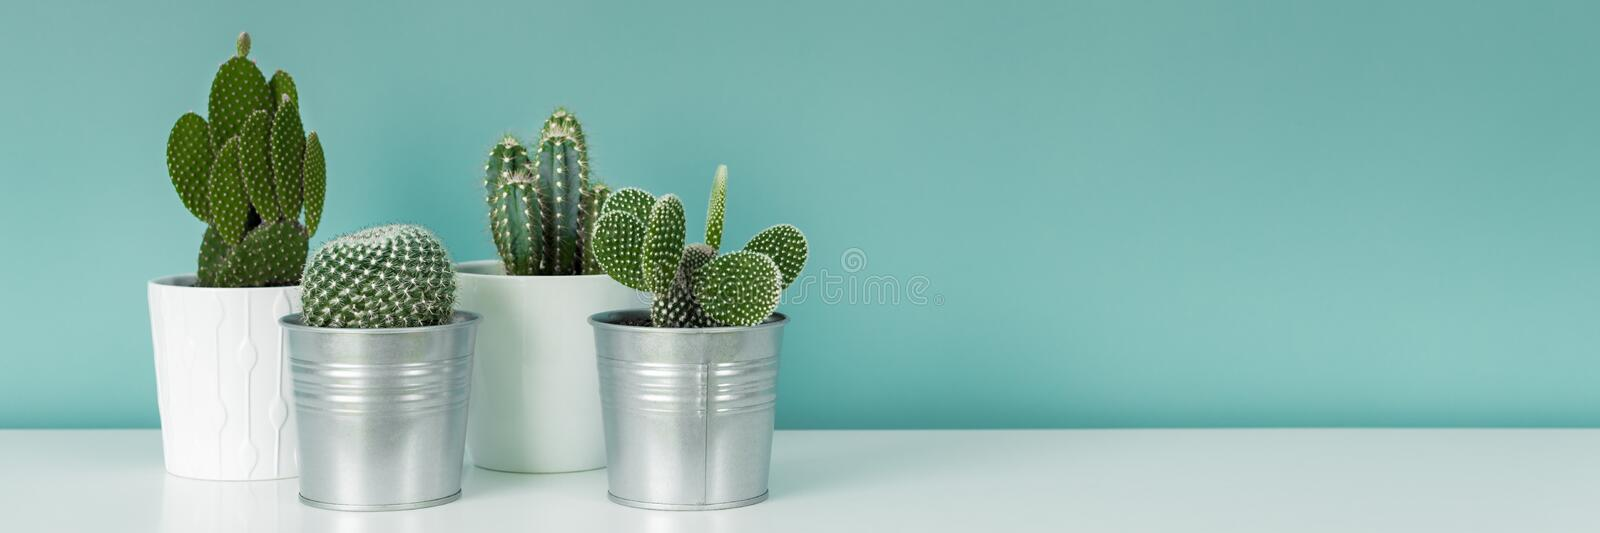 Collection of various potted cactus house plants on white shelf against pastel turquoise colored wall. Cactus plants banner. Modern room decoration. Collection stock photography